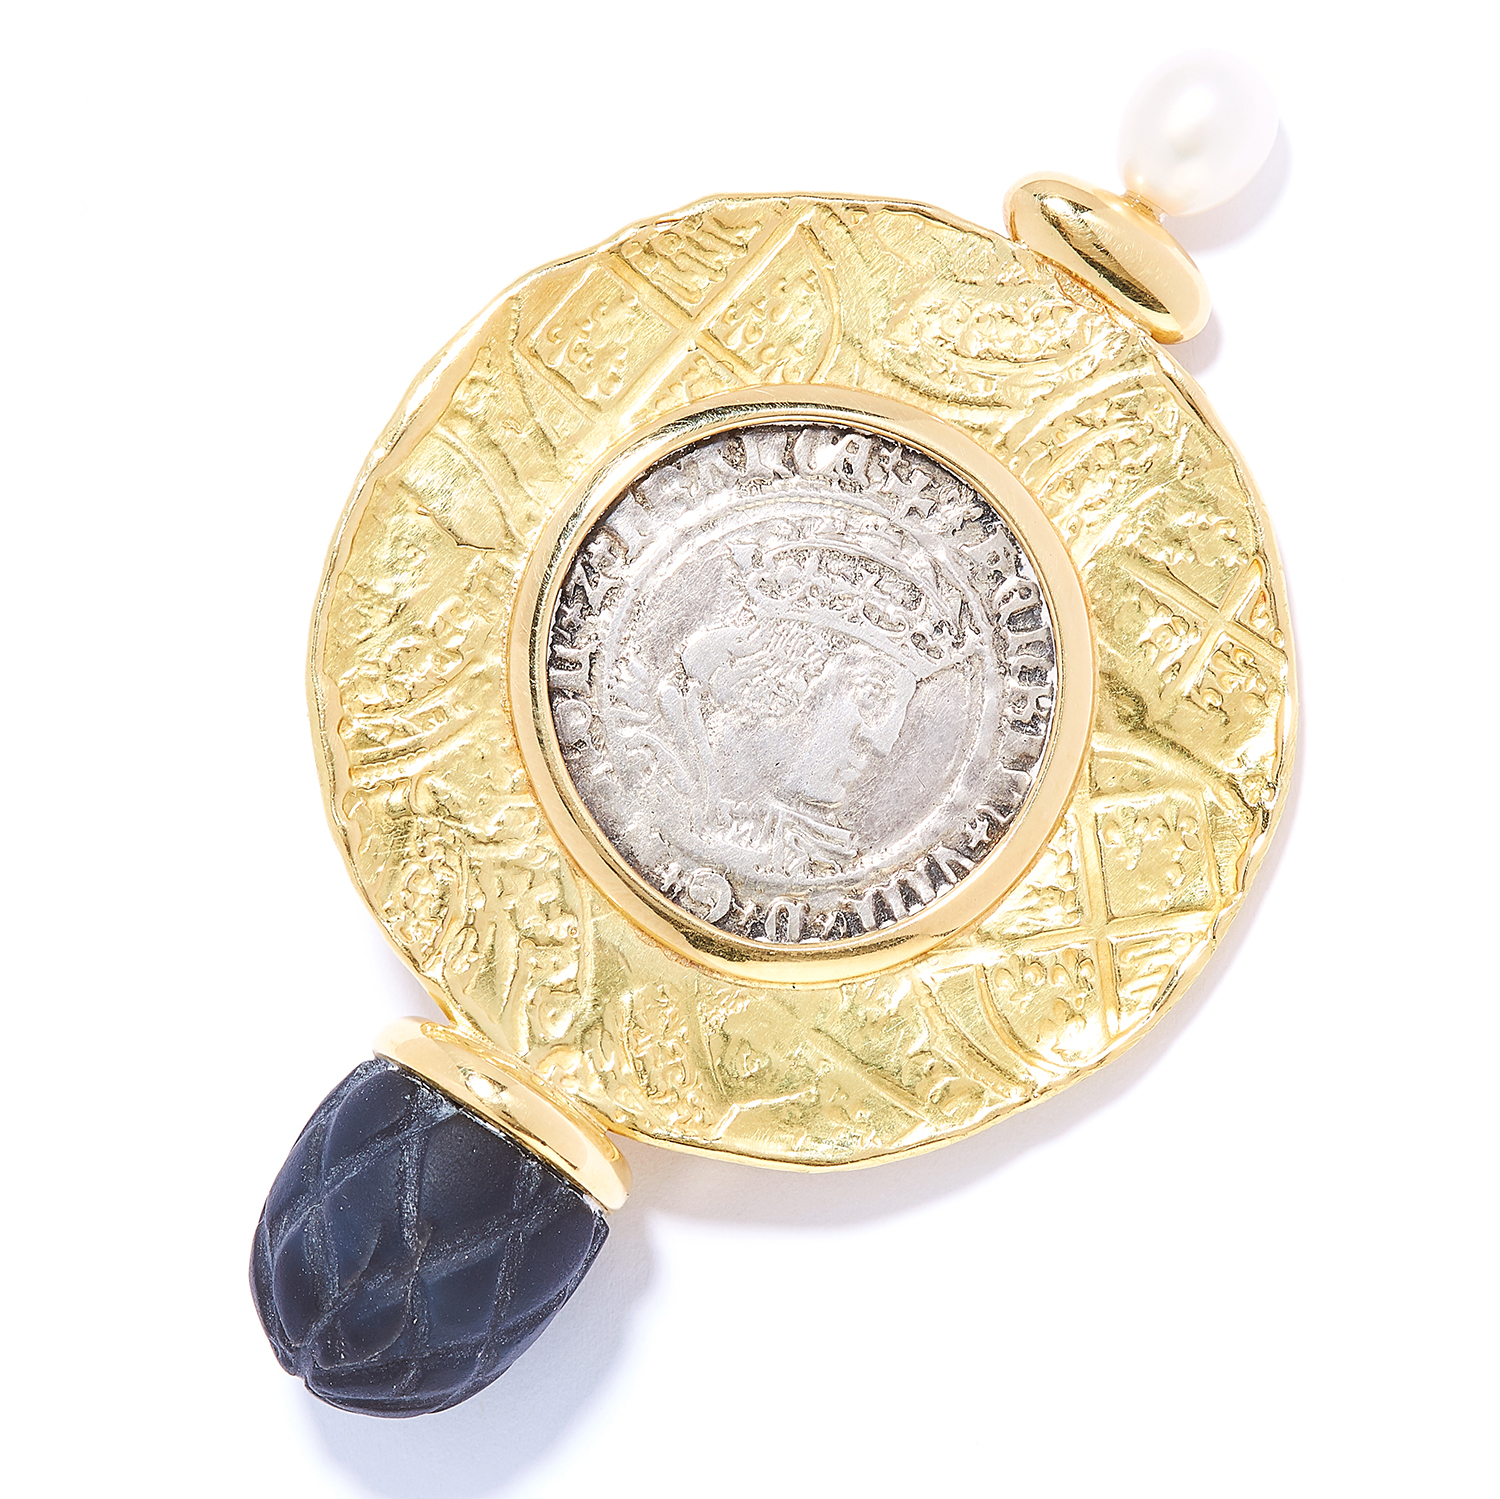 TUDOR COIN, PEARL AND BLACK HARDSTONE BROOCH, ELIZABETH GAGE, 1993 in 18ct yellow gold, comprising